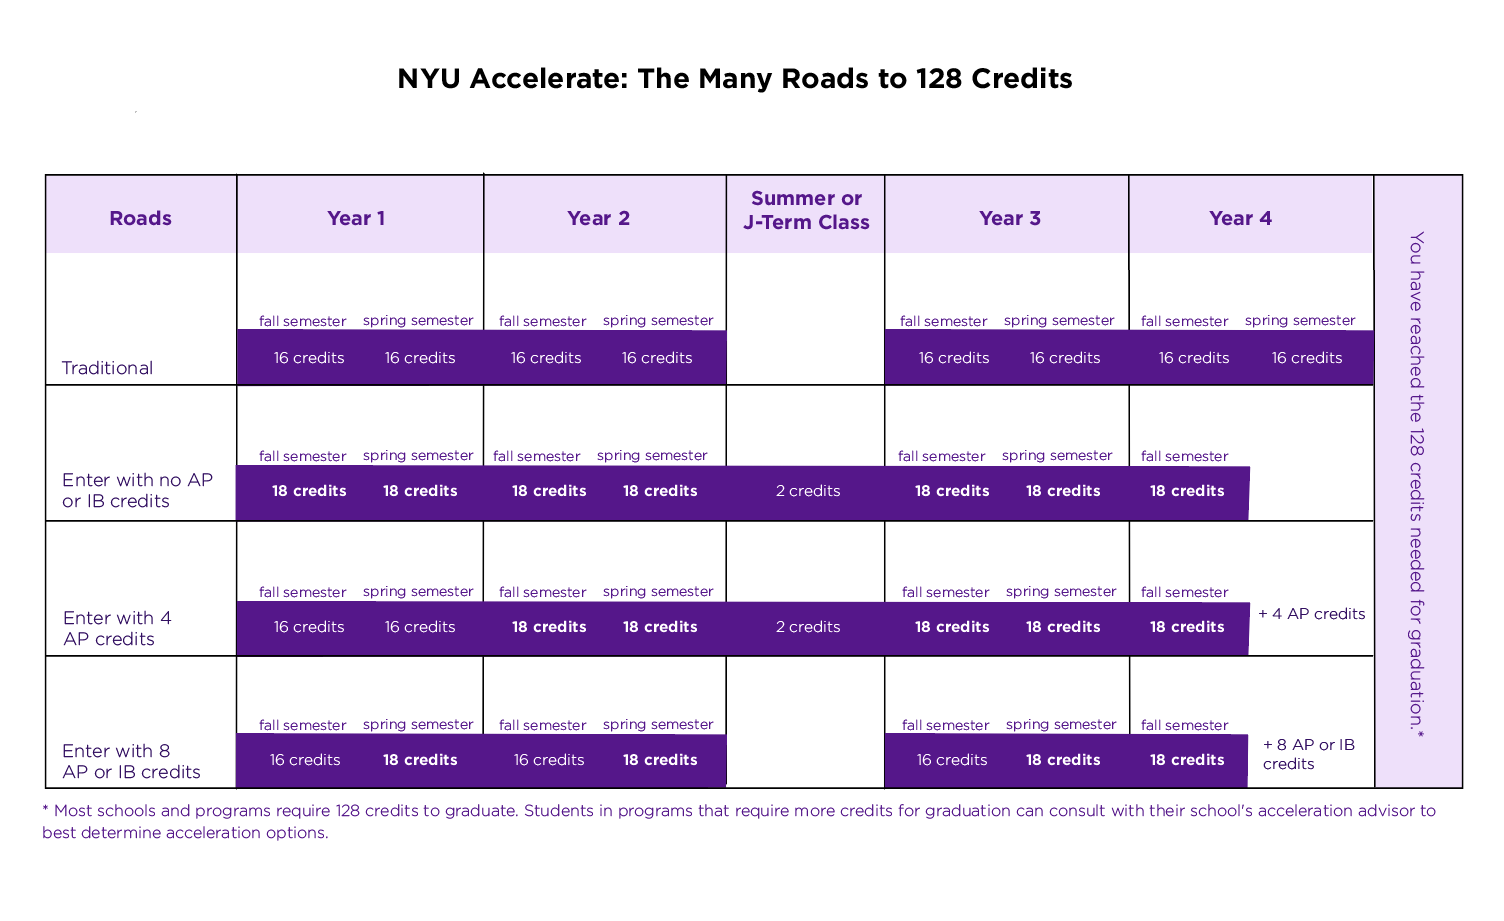 essay for nyu application After making no changes to its application essay questions last year from the year before, new york university's (nyu's) stern school of business has this season made a rather drastic overhaul to its prompts.